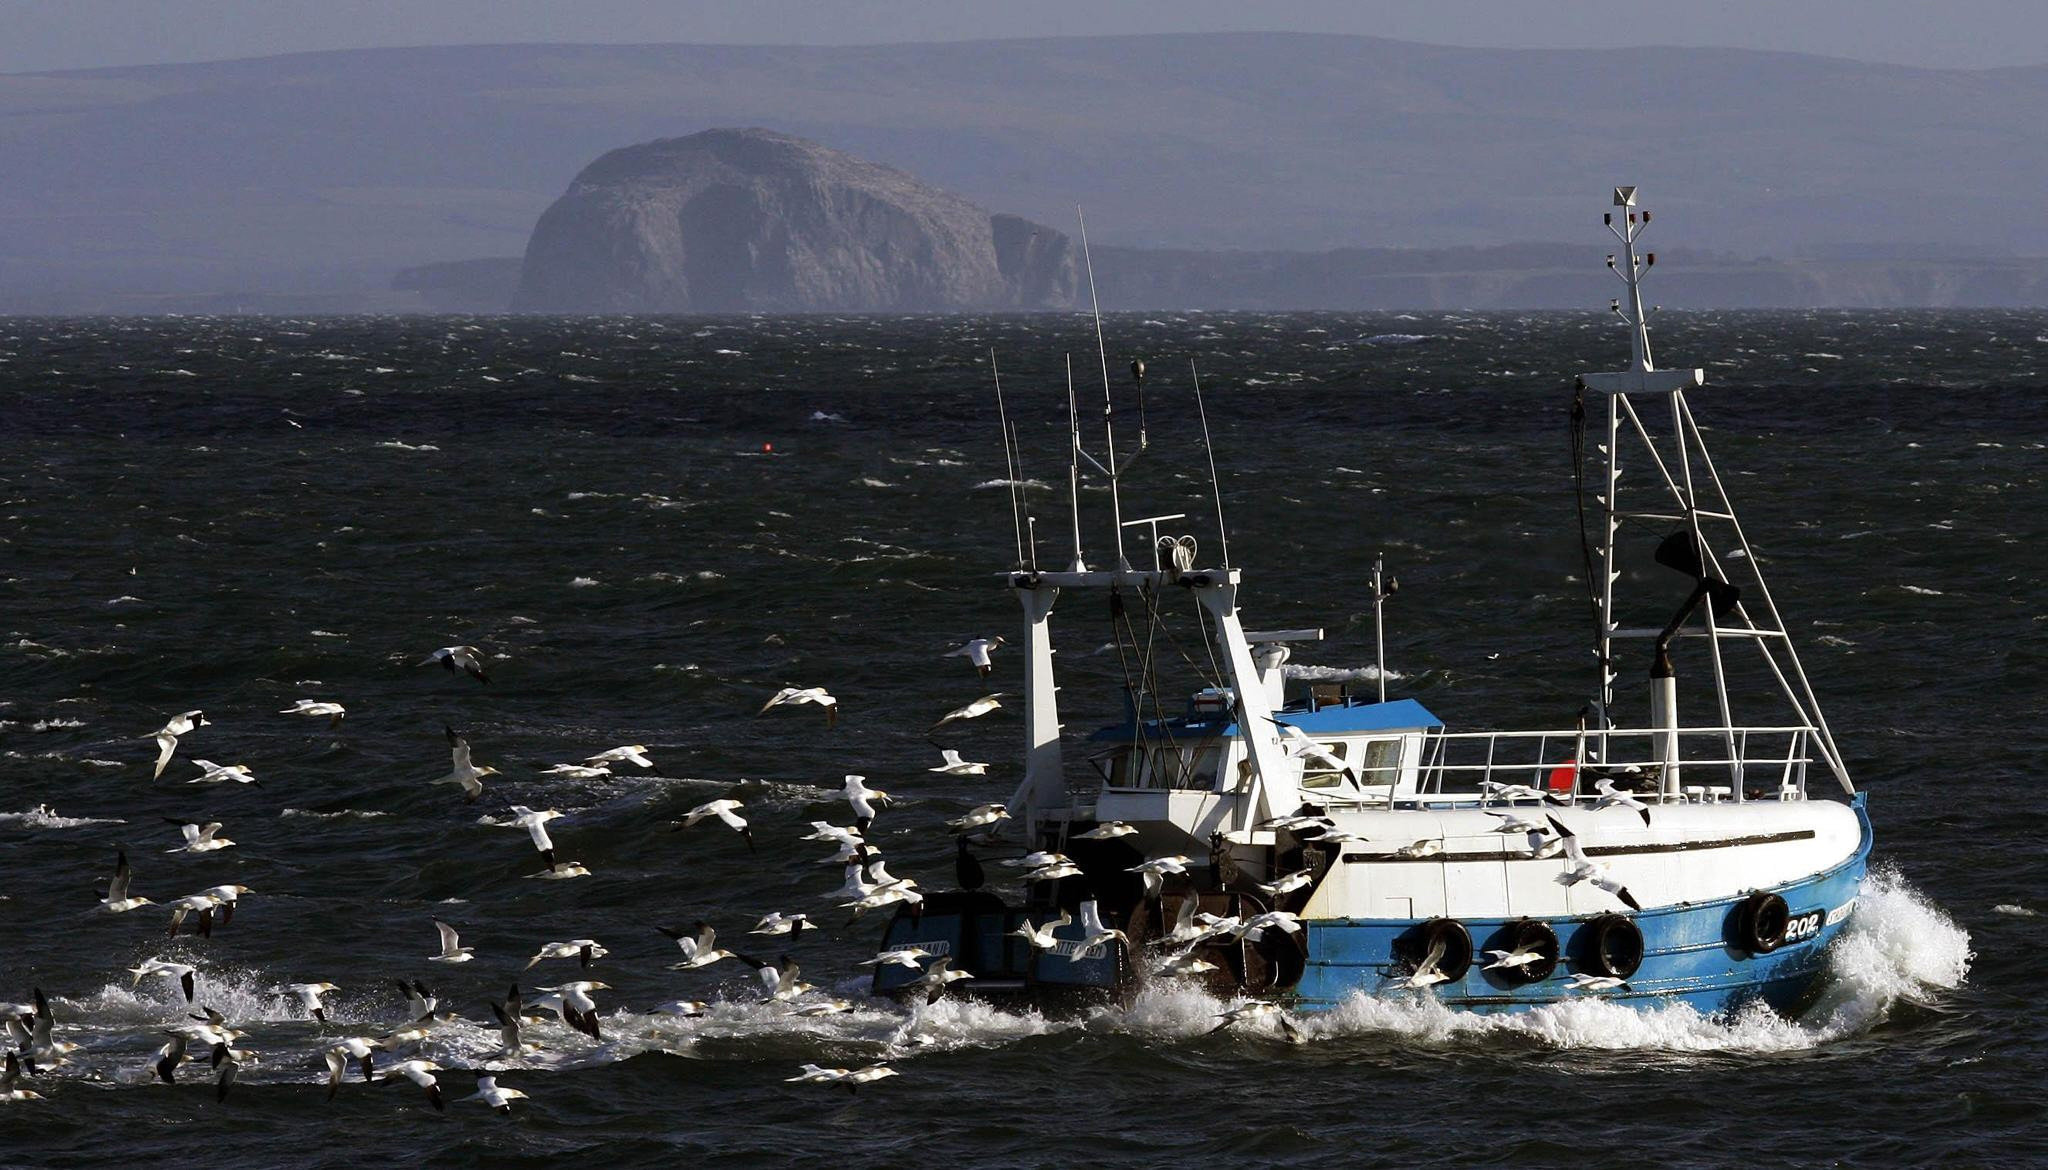 Calls have been made for more quotas to go to small-scale, local fishermen. Picture: PA.